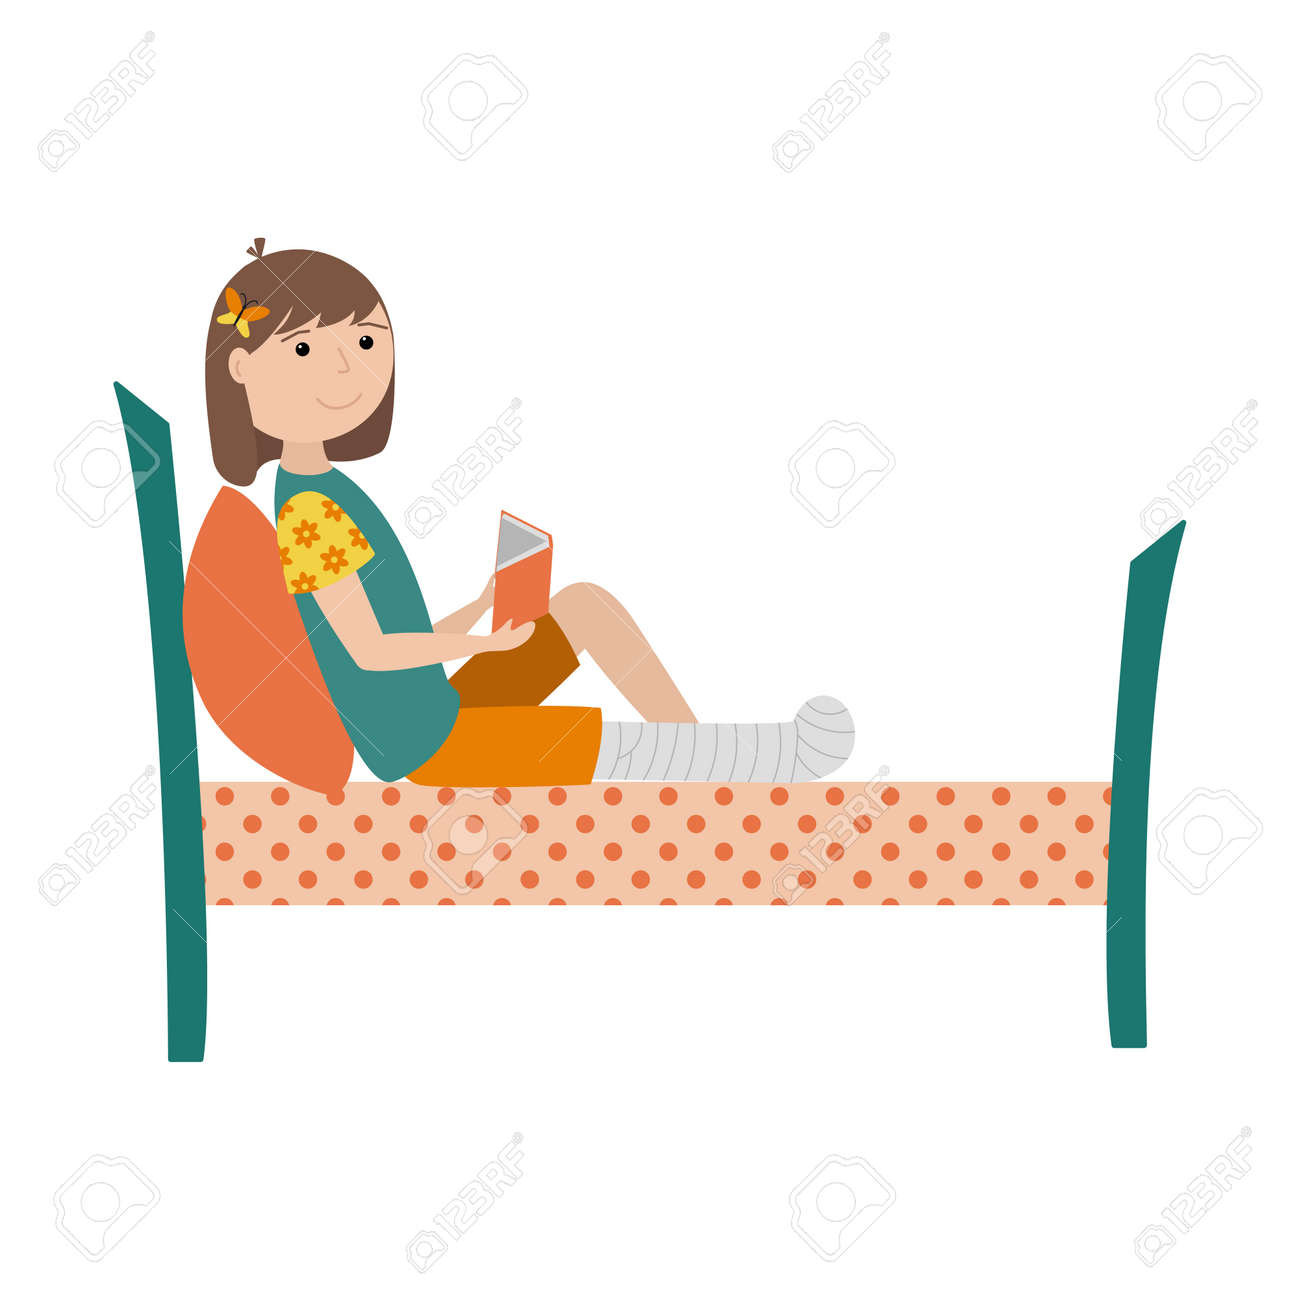 A girl with a broken leg is lying on the bed with a book in her hands. The leg is bandaged and fixed with a cast. Color illustration with children in a flat style. Isolated on a white background. - 170498964